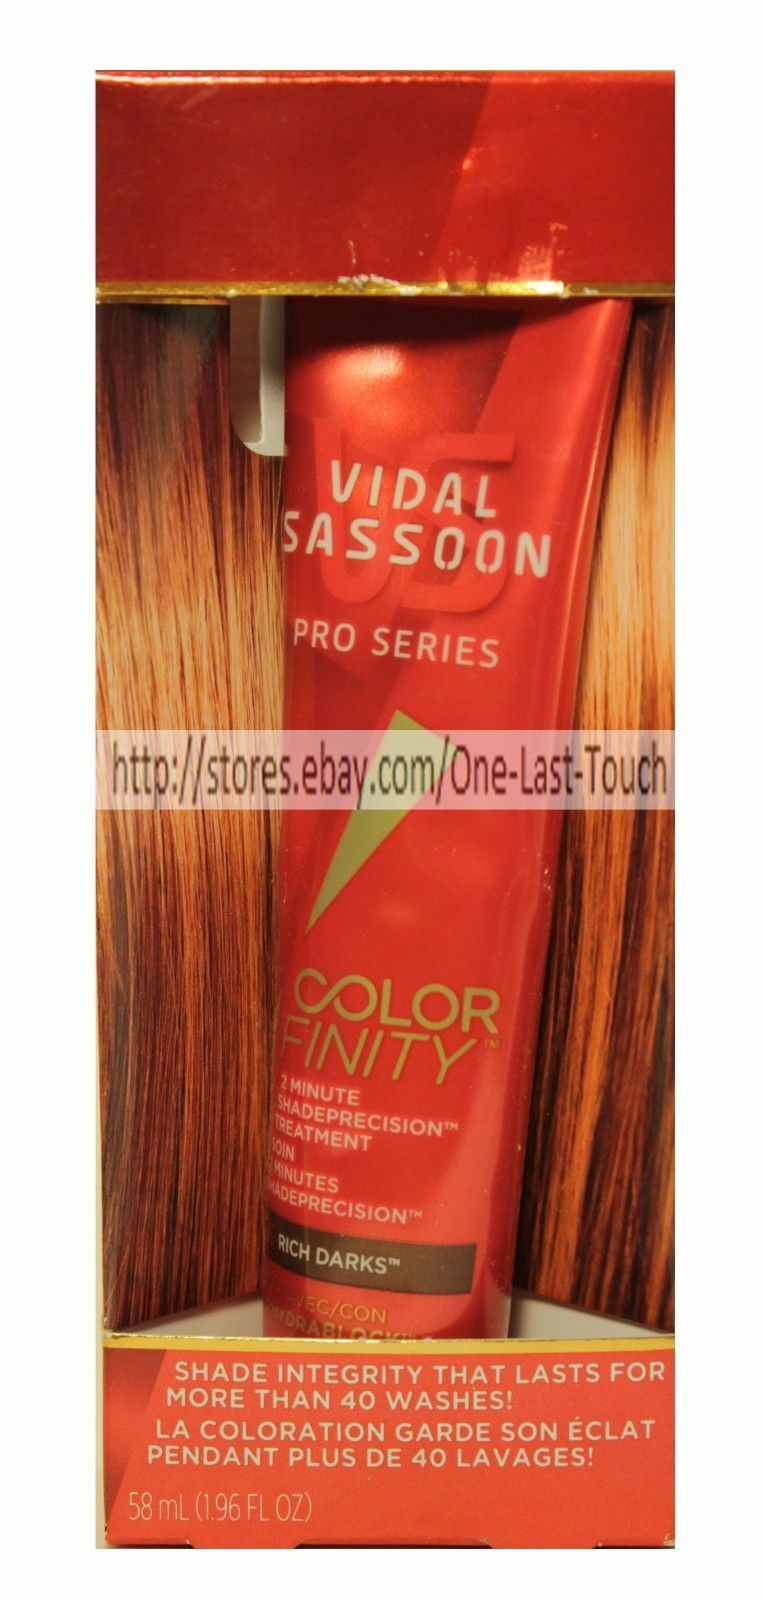 VIDAL SASSOON*Color Finity 2 MINUTE SHADE PRECISION Pro Series RICH DARKS Trtmnt